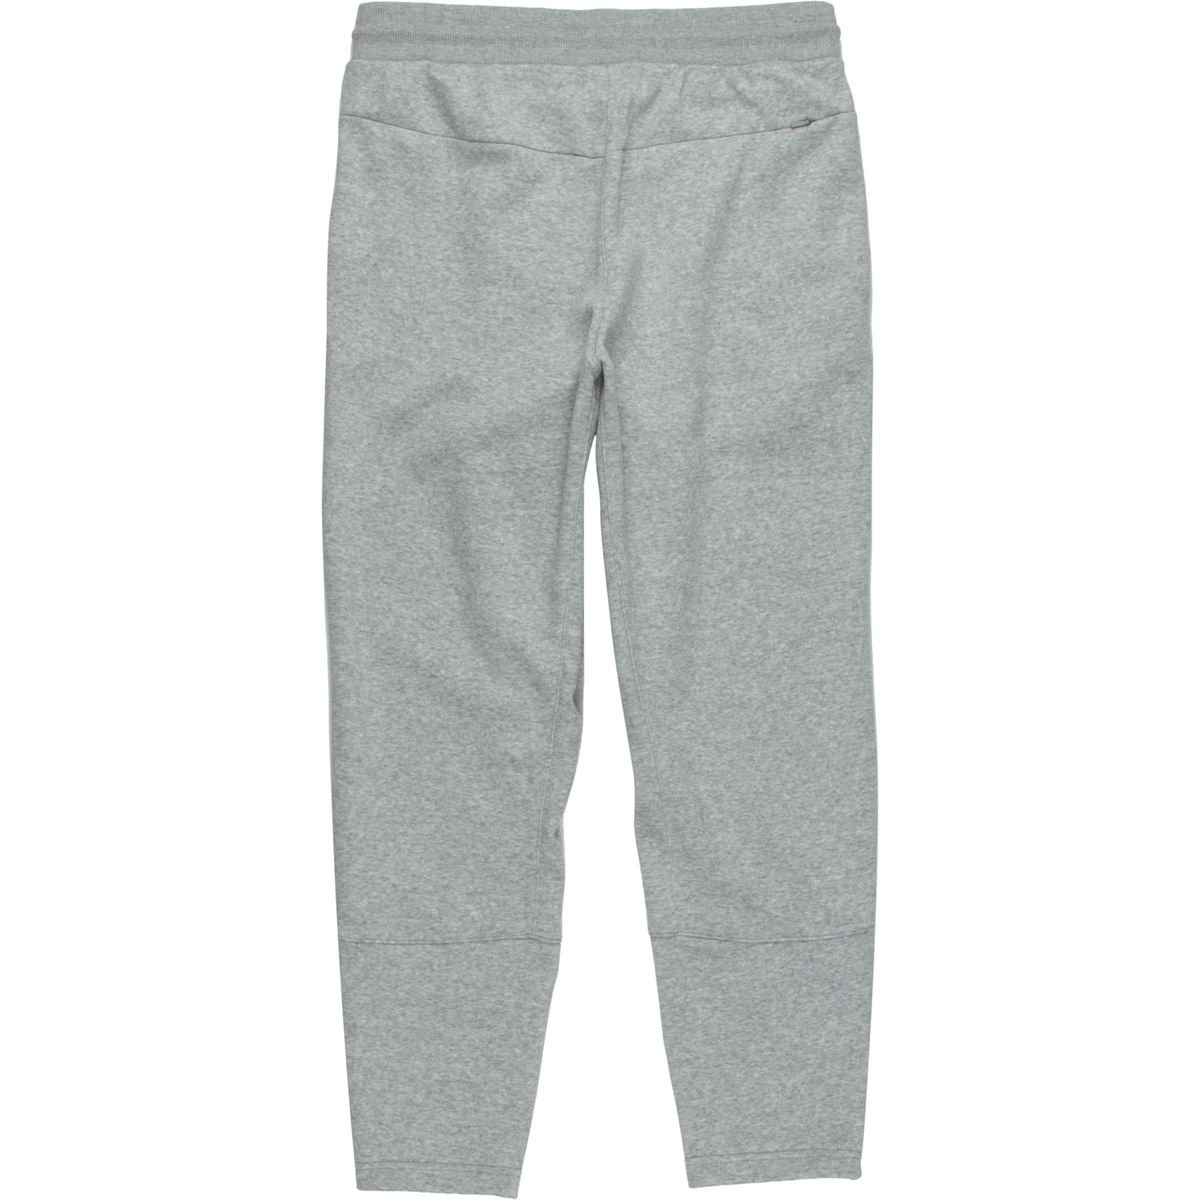 : adidas Originals Sport Luxe Men's Zip Pants Grey